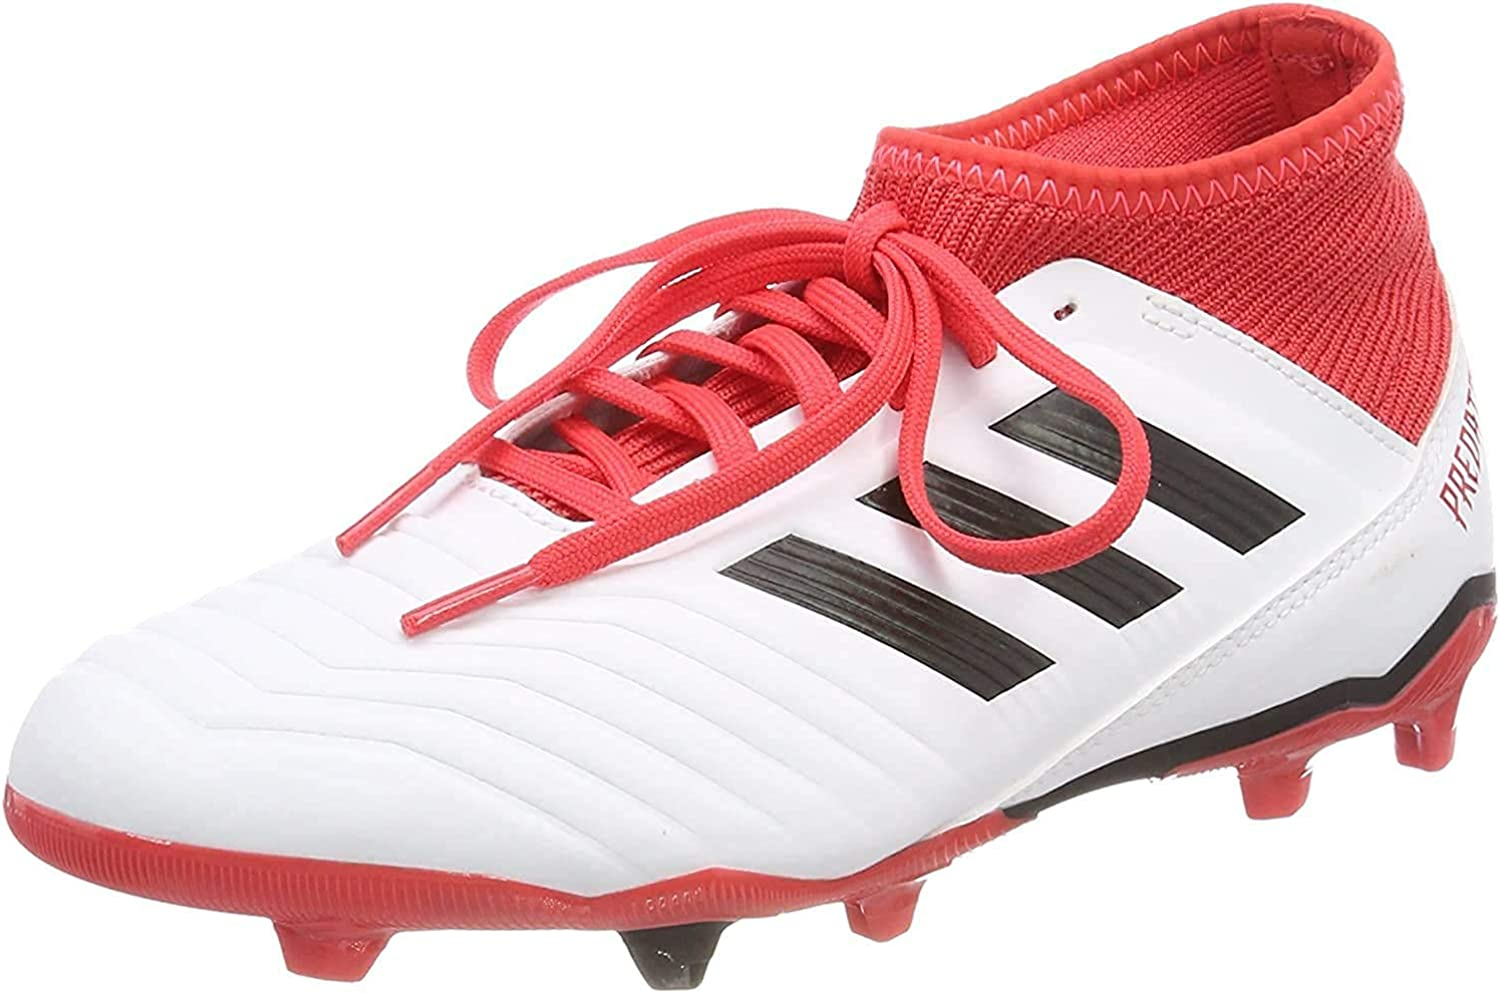 adidas Predator 18.3 FG Firm Ground Kids Soccer Soccer Boot Cold Blooded